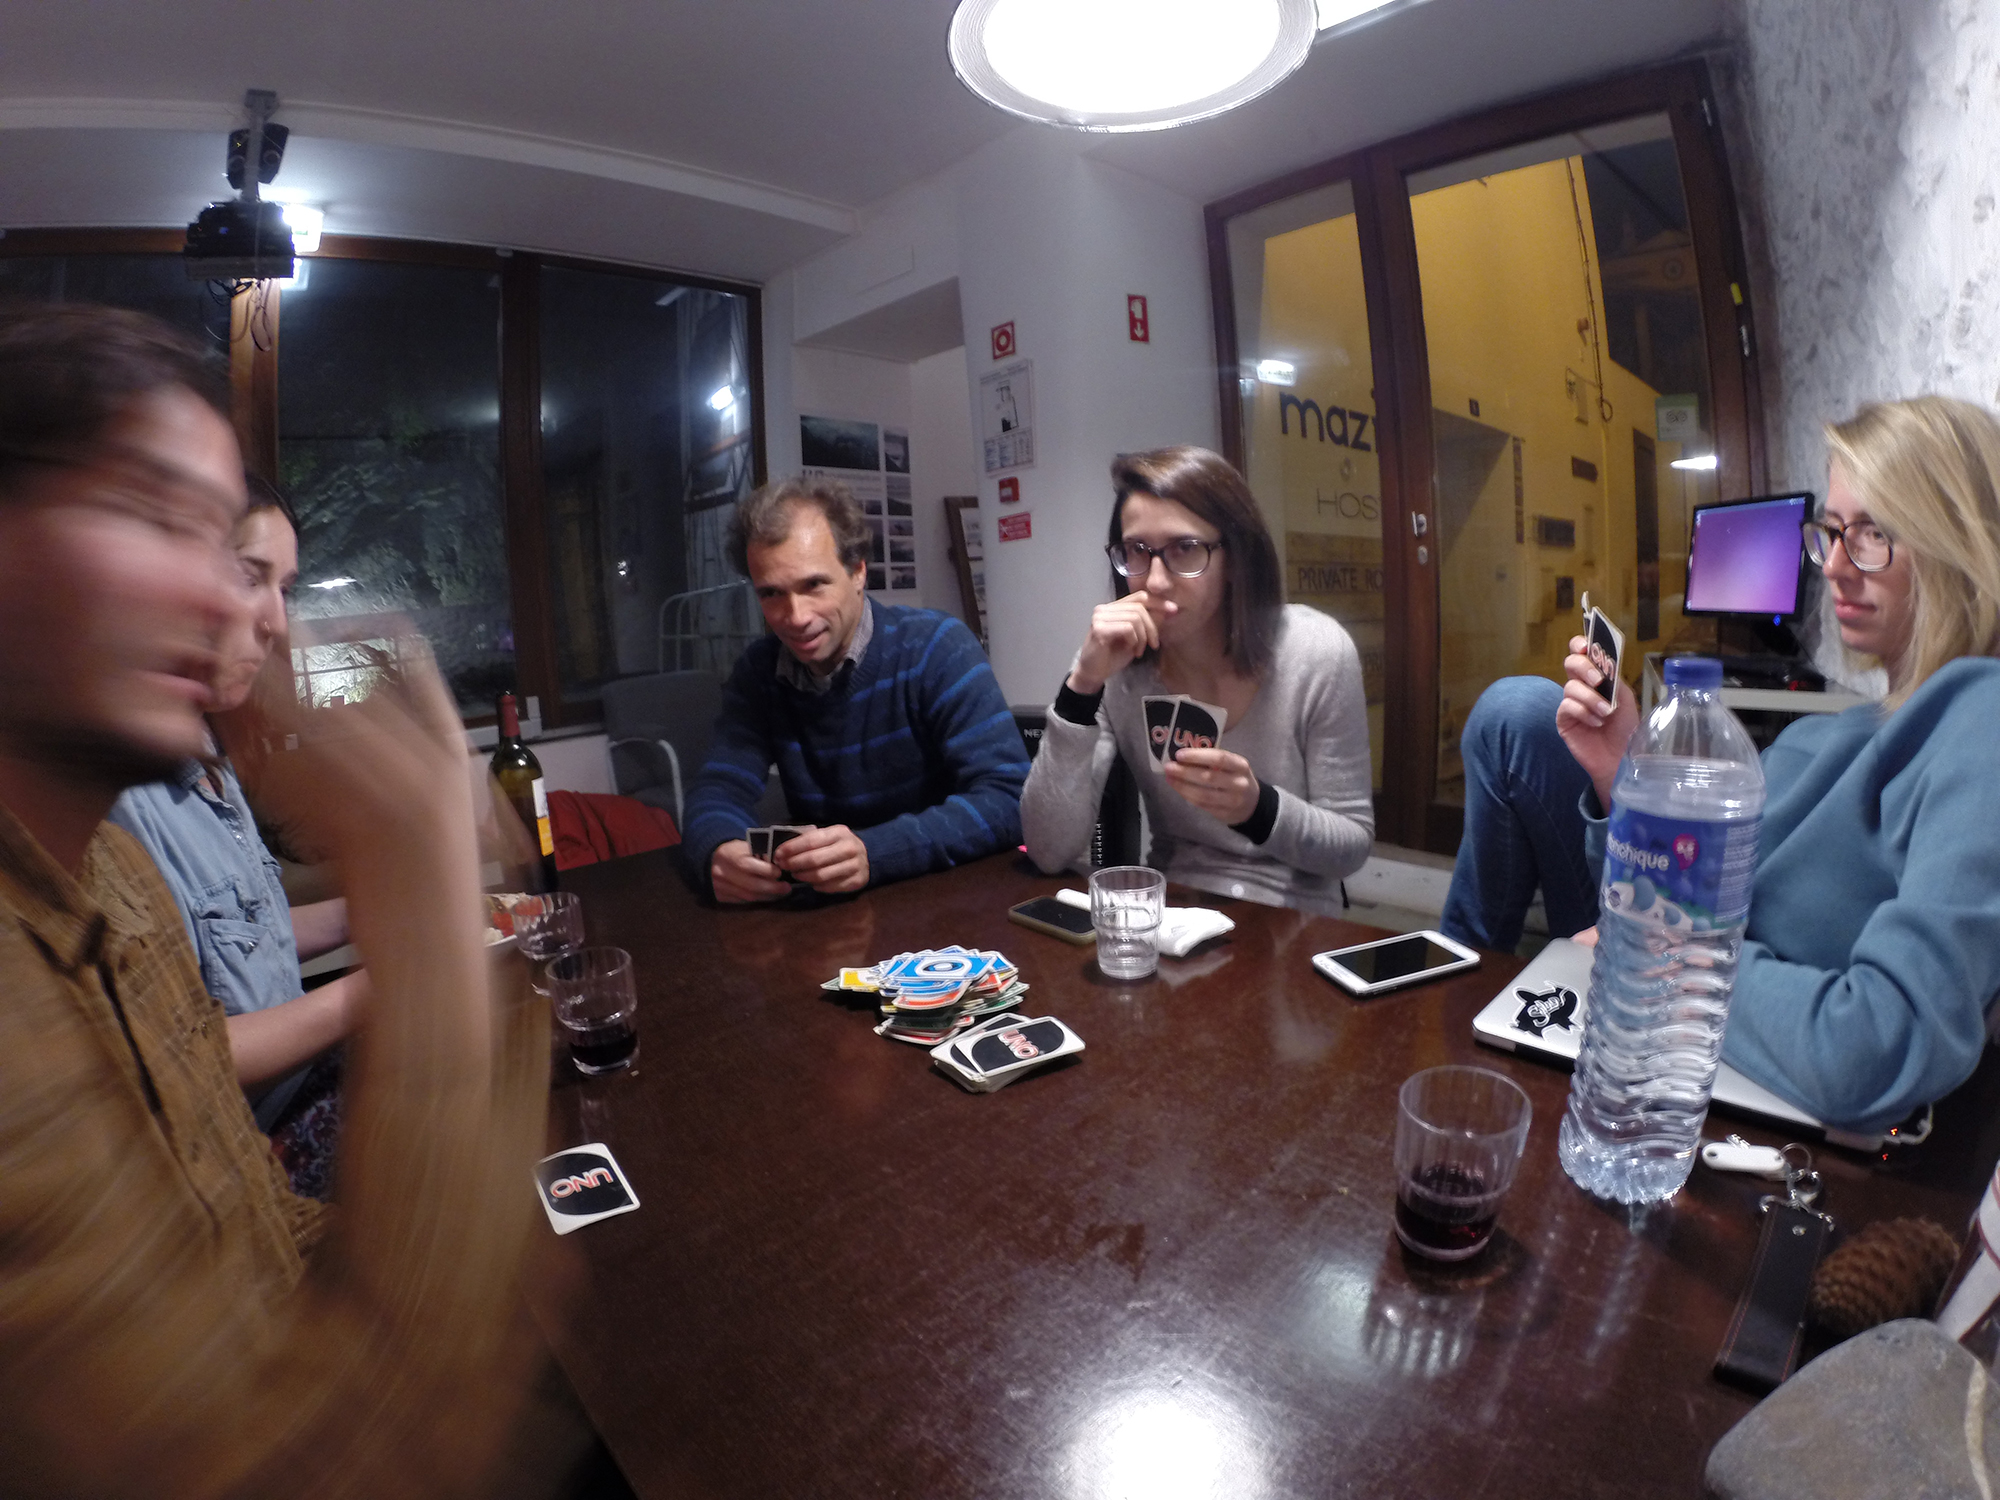 Playing Uno at Amazigh Hostel in Aljezur, Portugal